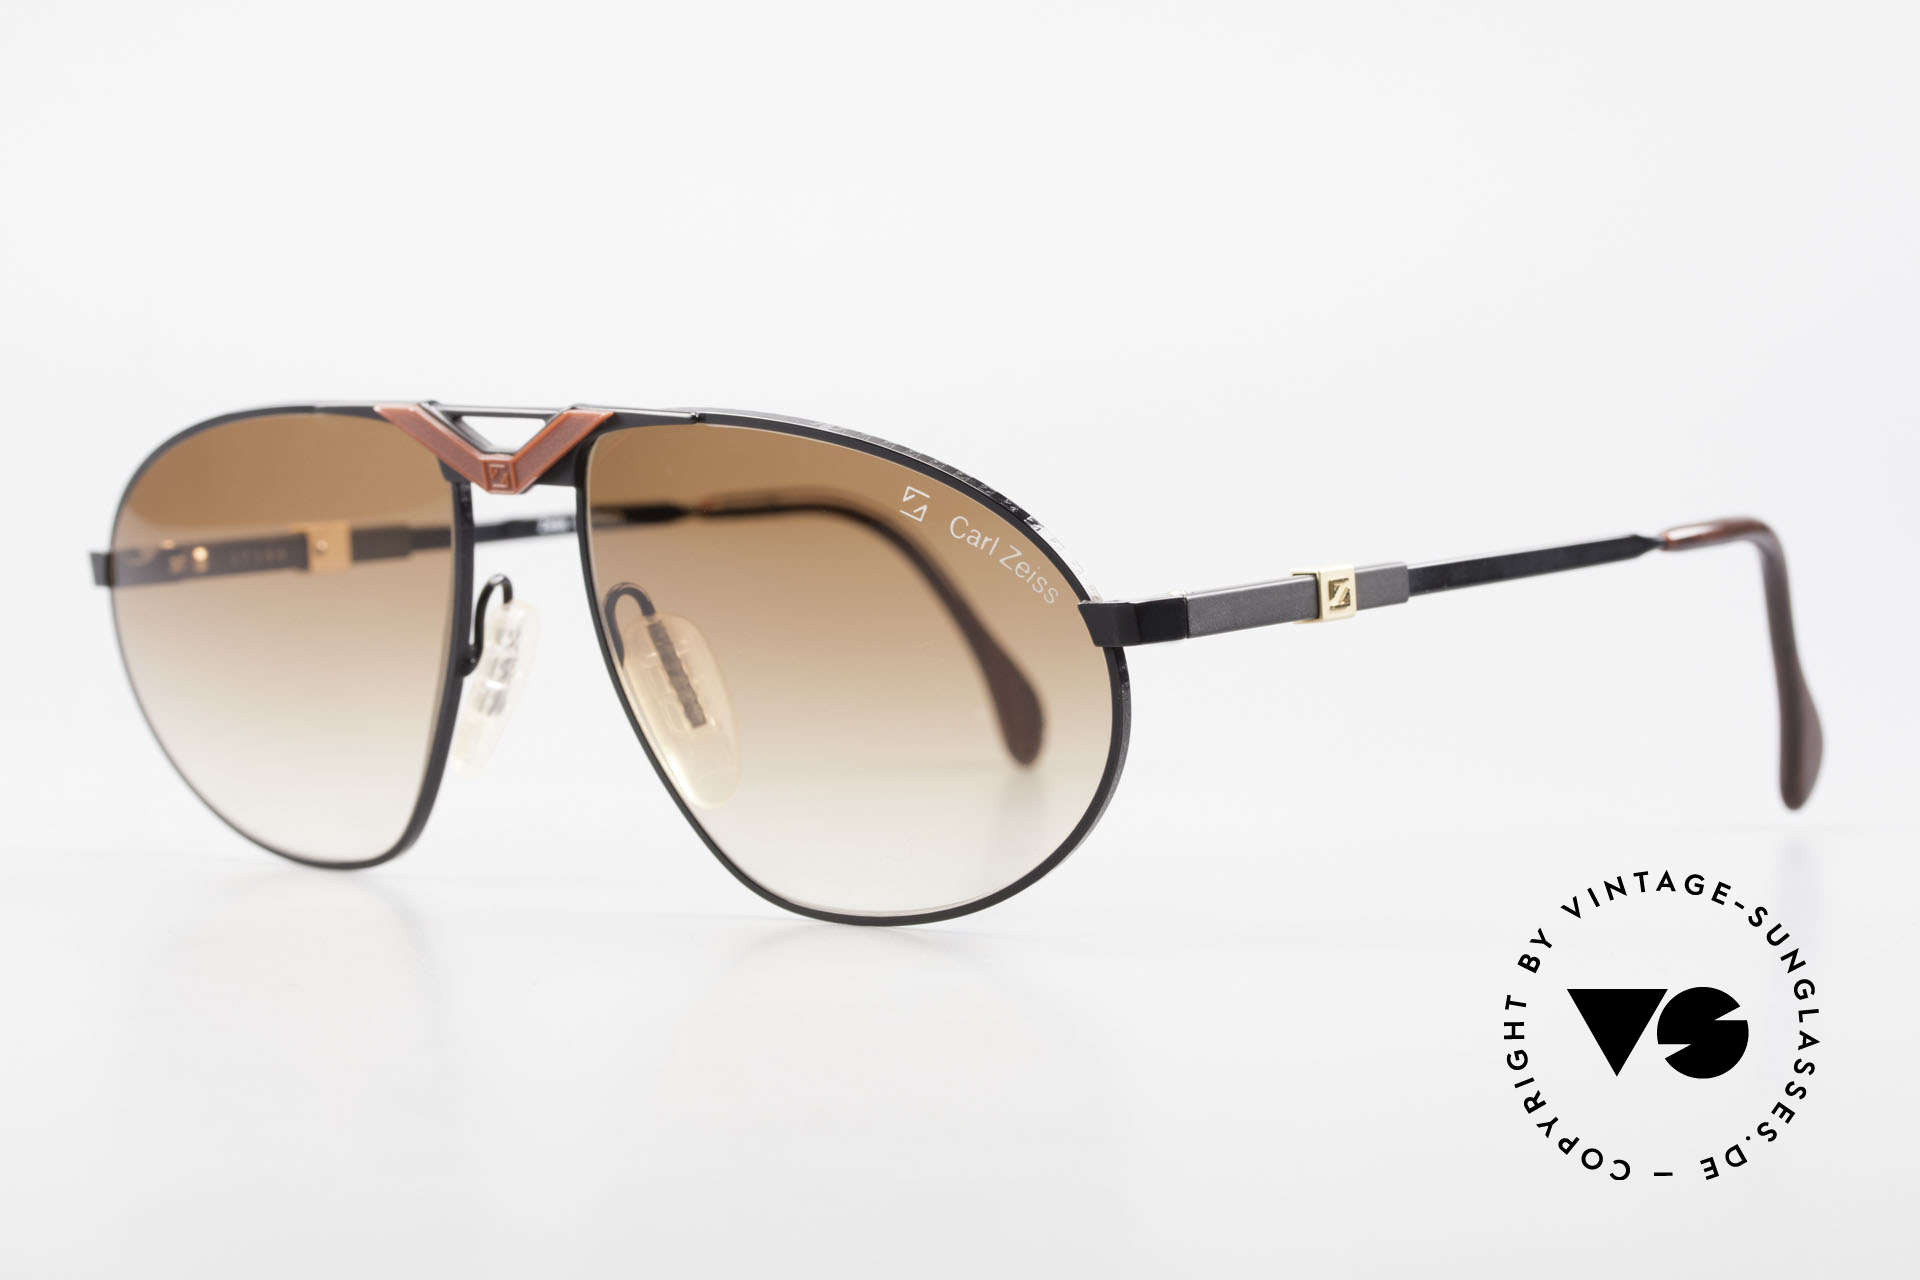 Zeiss 9929 Old 80's Competition Series, flexible spring hinges for a 1st class wearing comfort, Made for Men